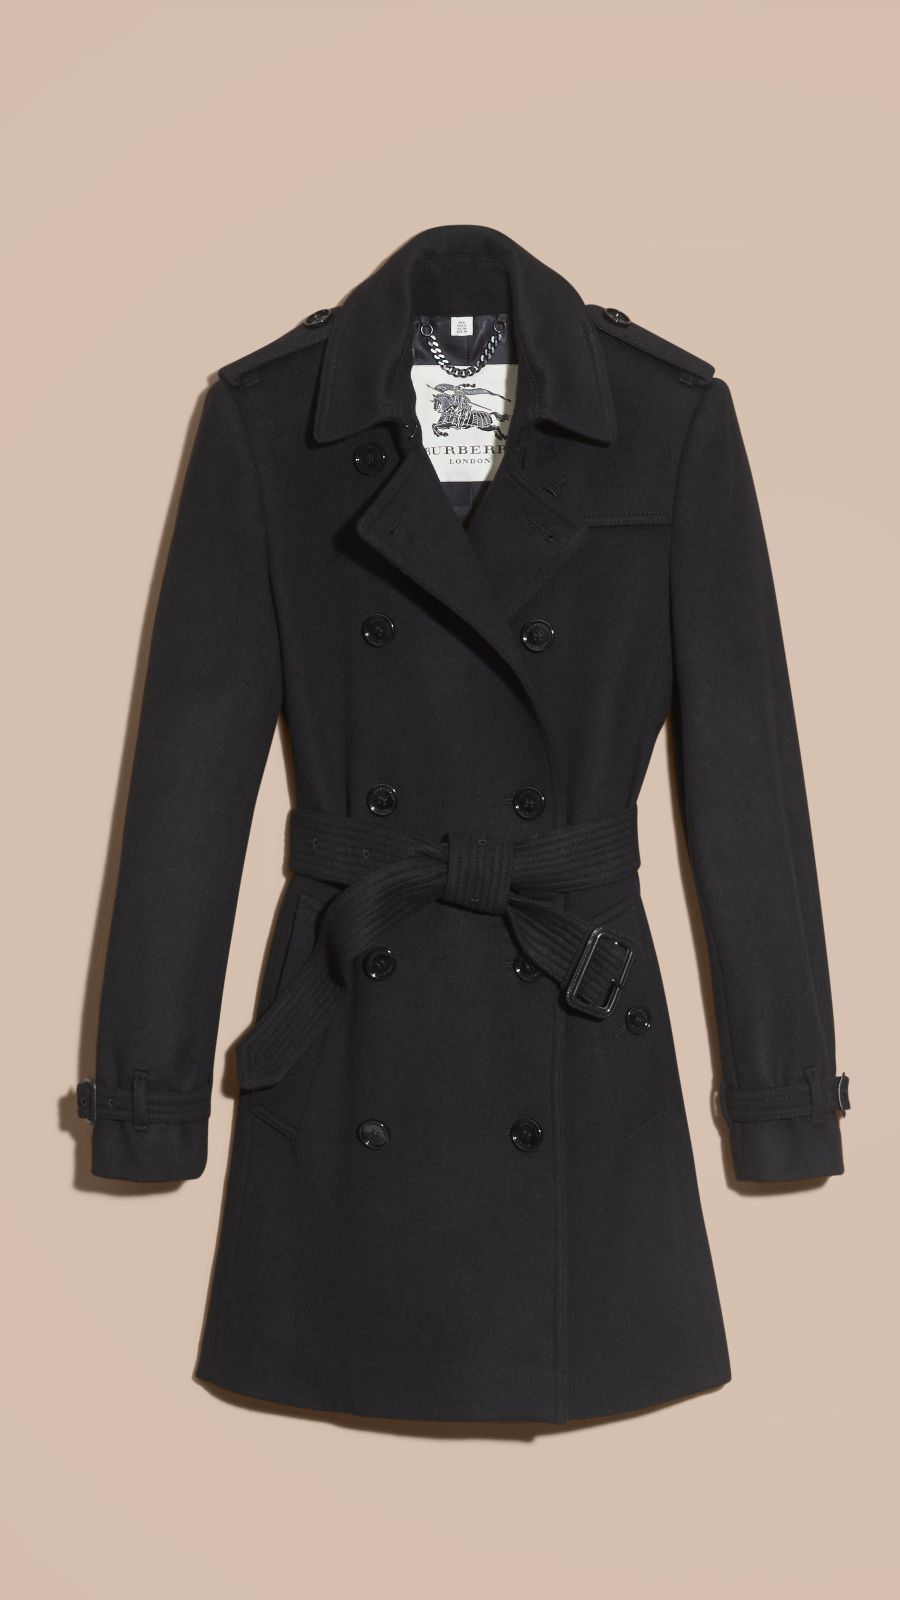 Black Virgin Wool Cashmere Trench Coat - Image 4